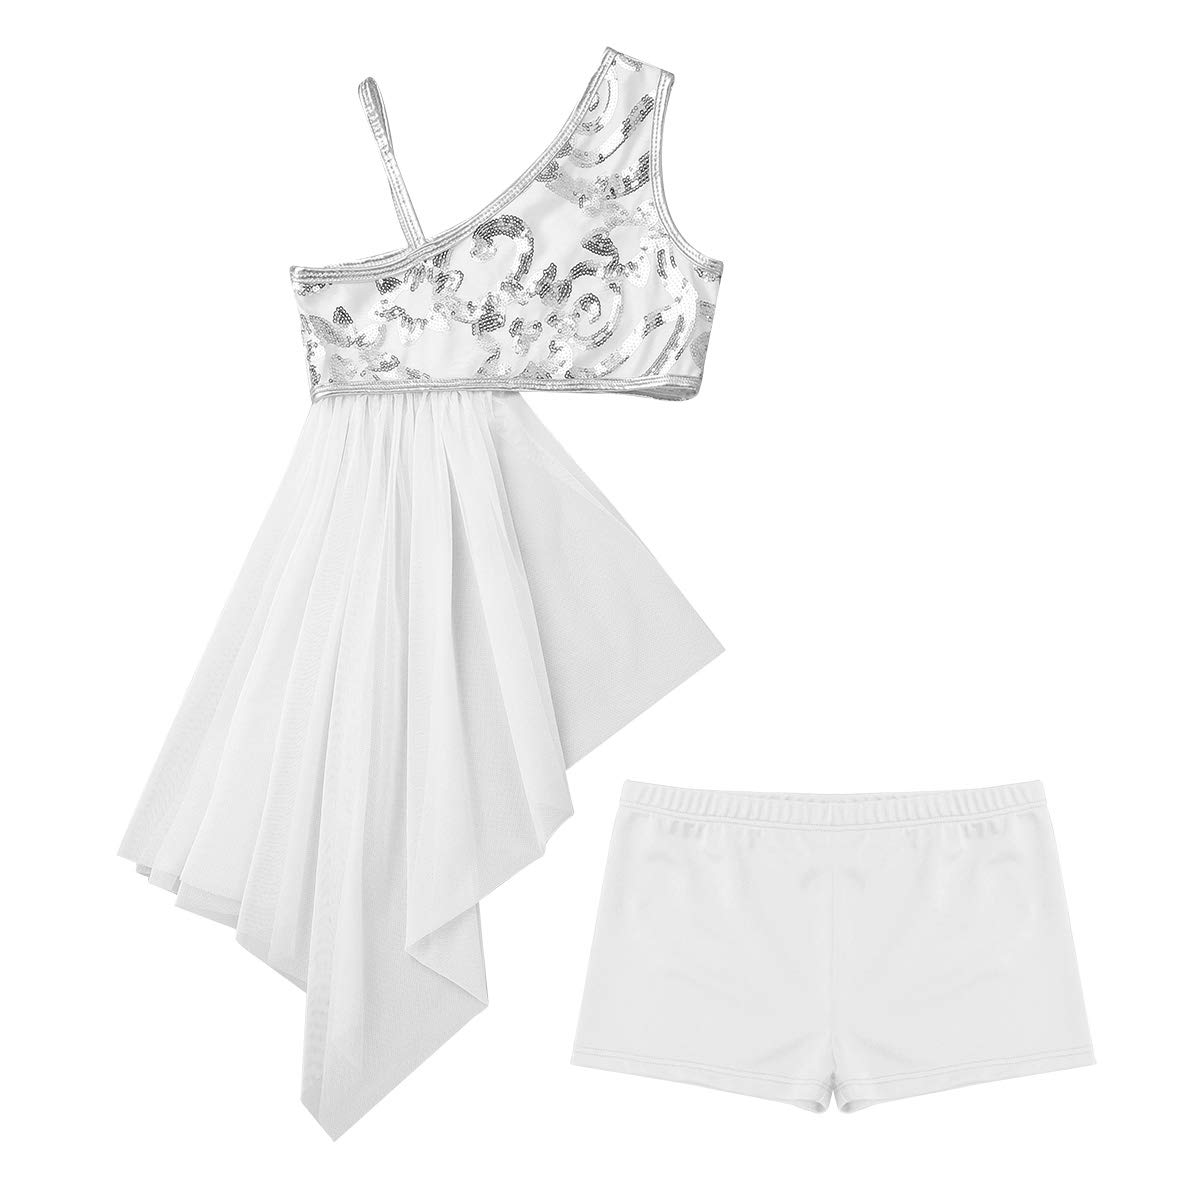 inhzoy Kids Girls 2 PCS Dance Outfits One Shoulder Floral Sequins Top Side Waist Open Drap Skirt with Bottoms White 6 by inhzoy